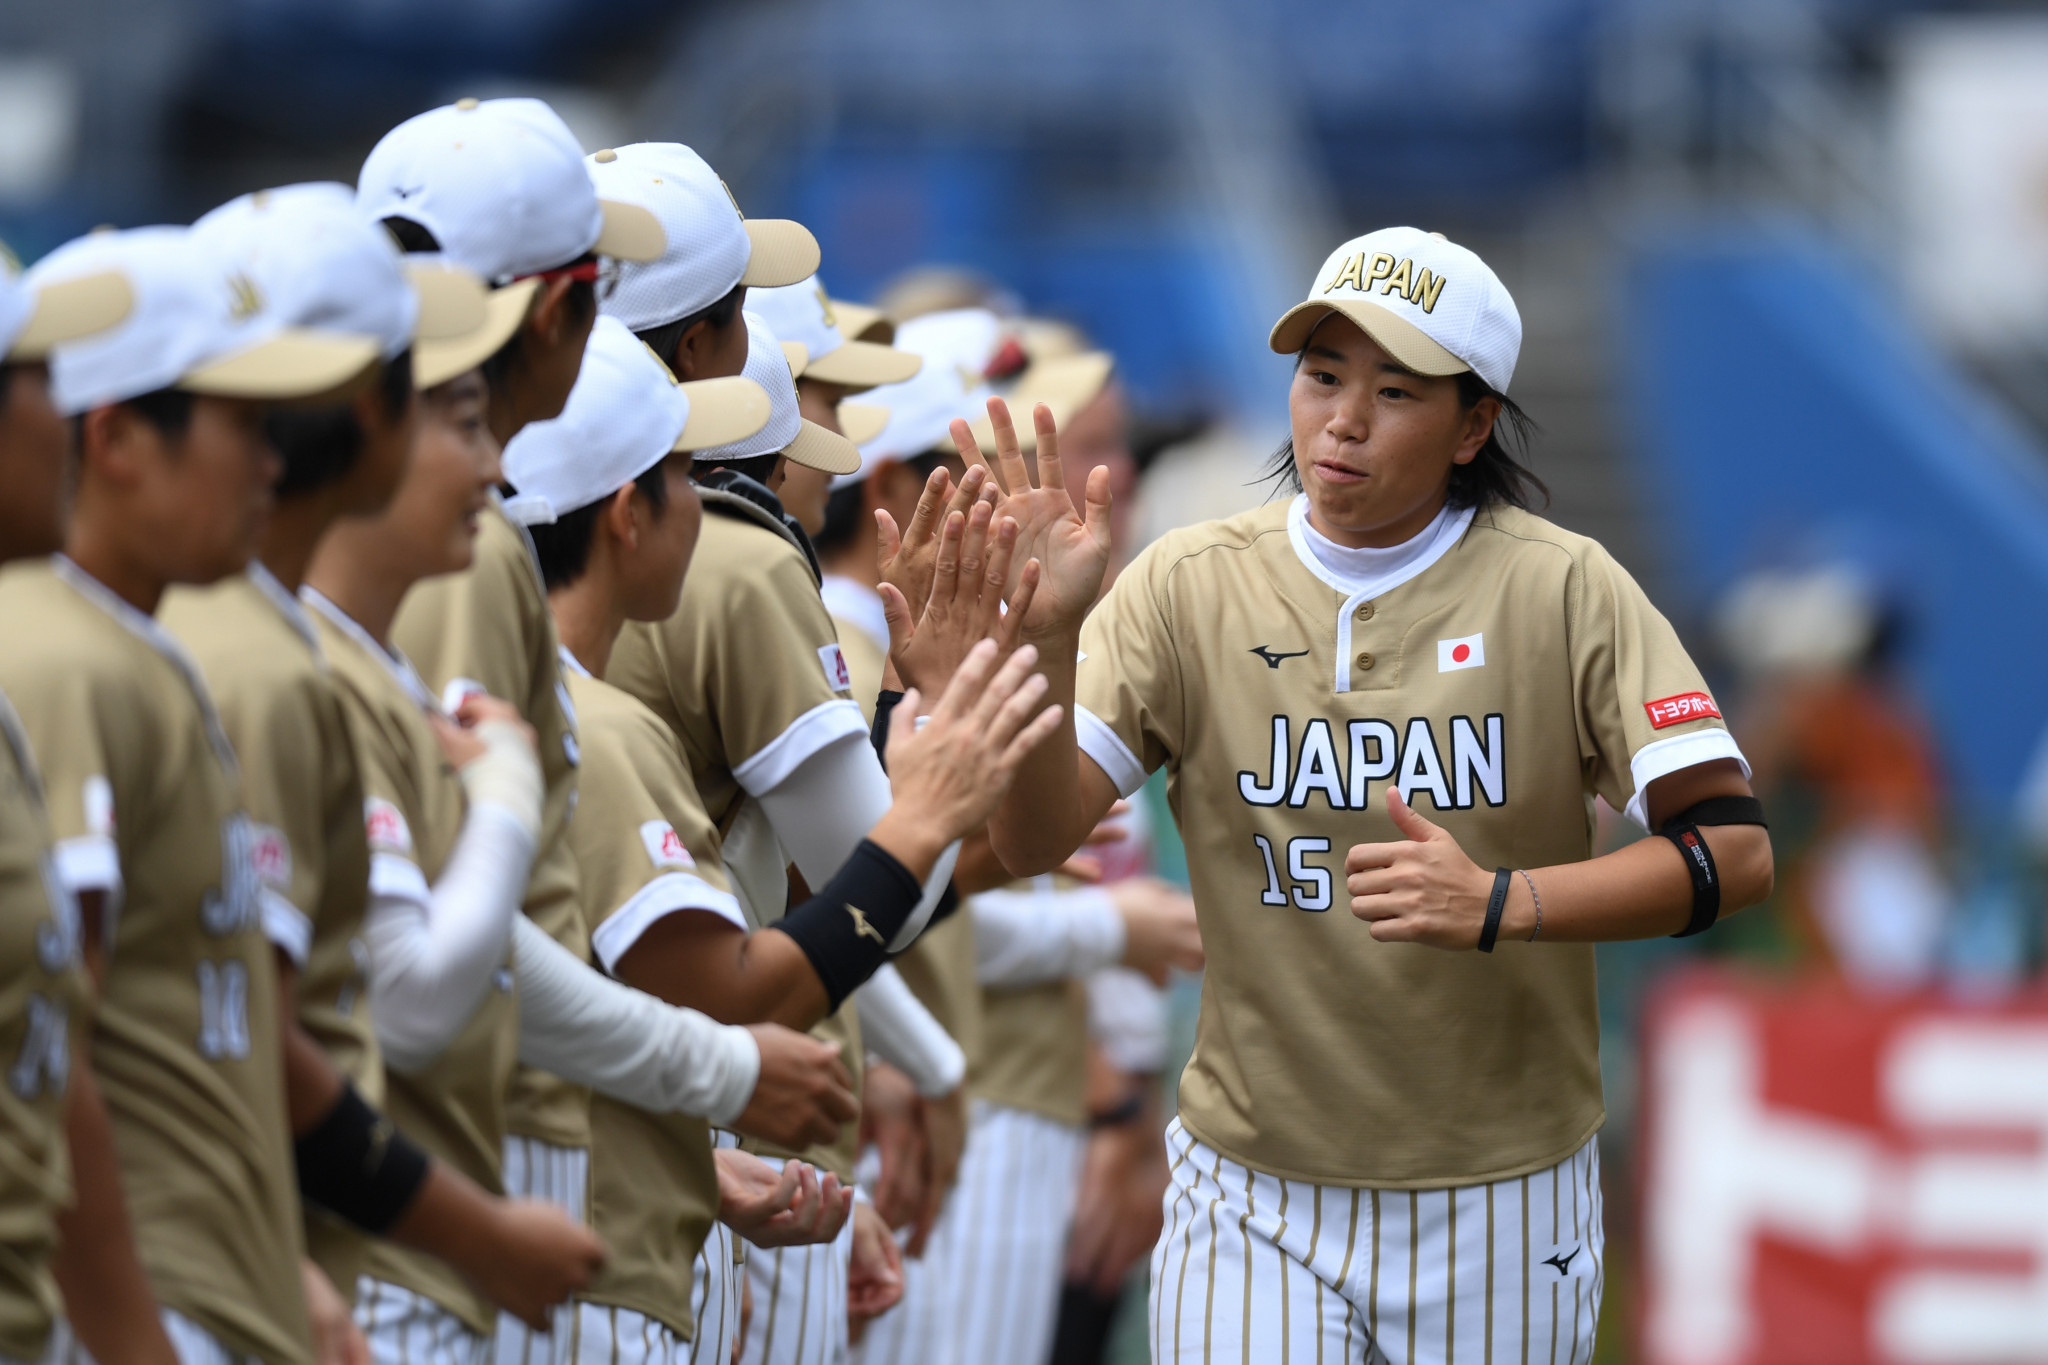 Softball Asia postpones WBSC World Cup qualifiers